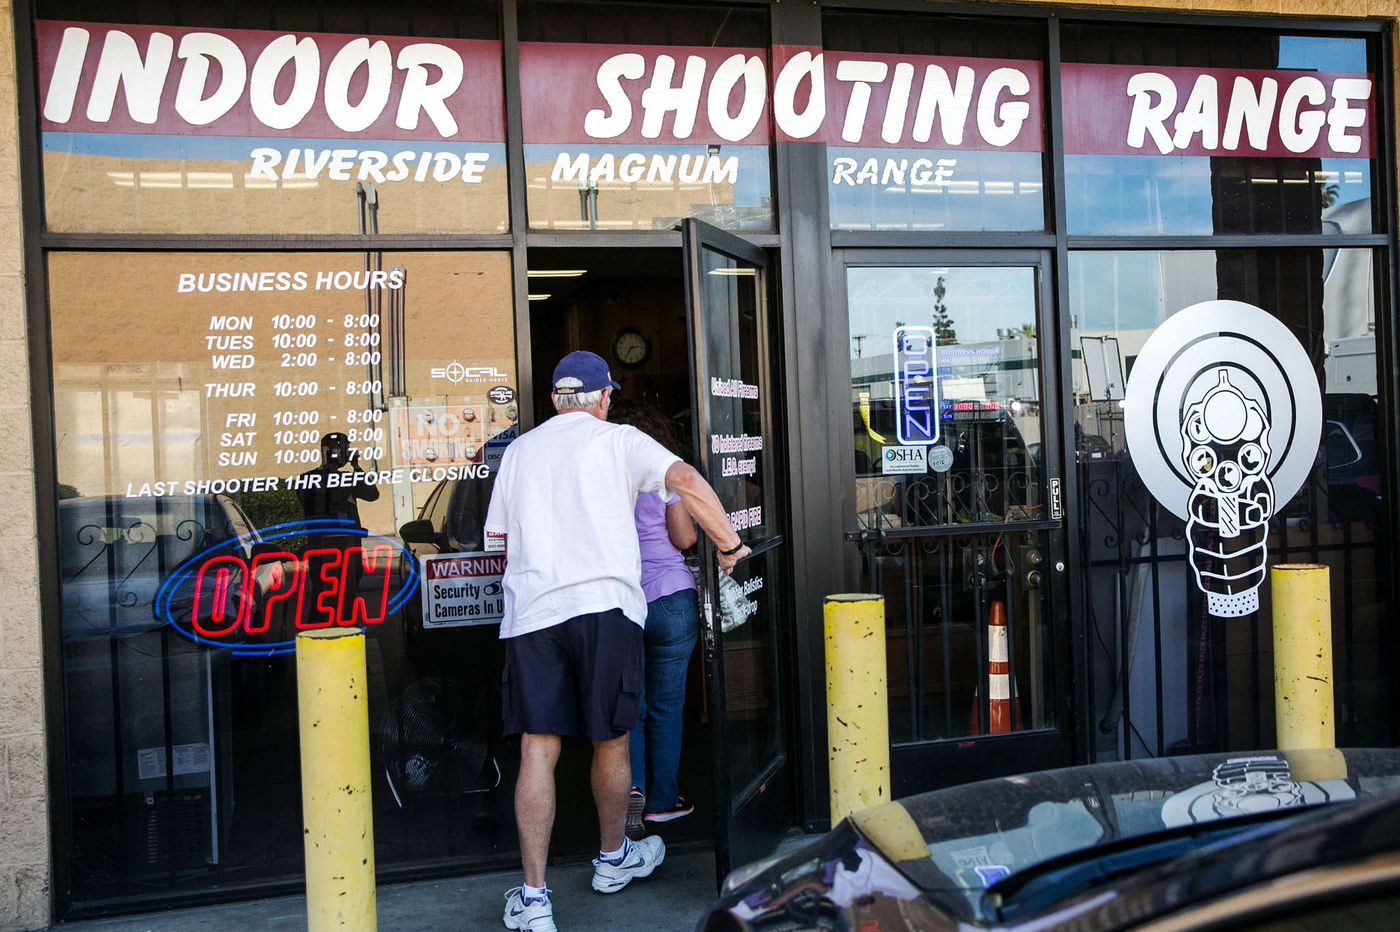 California attack shows difficulty ID'ing terrorists